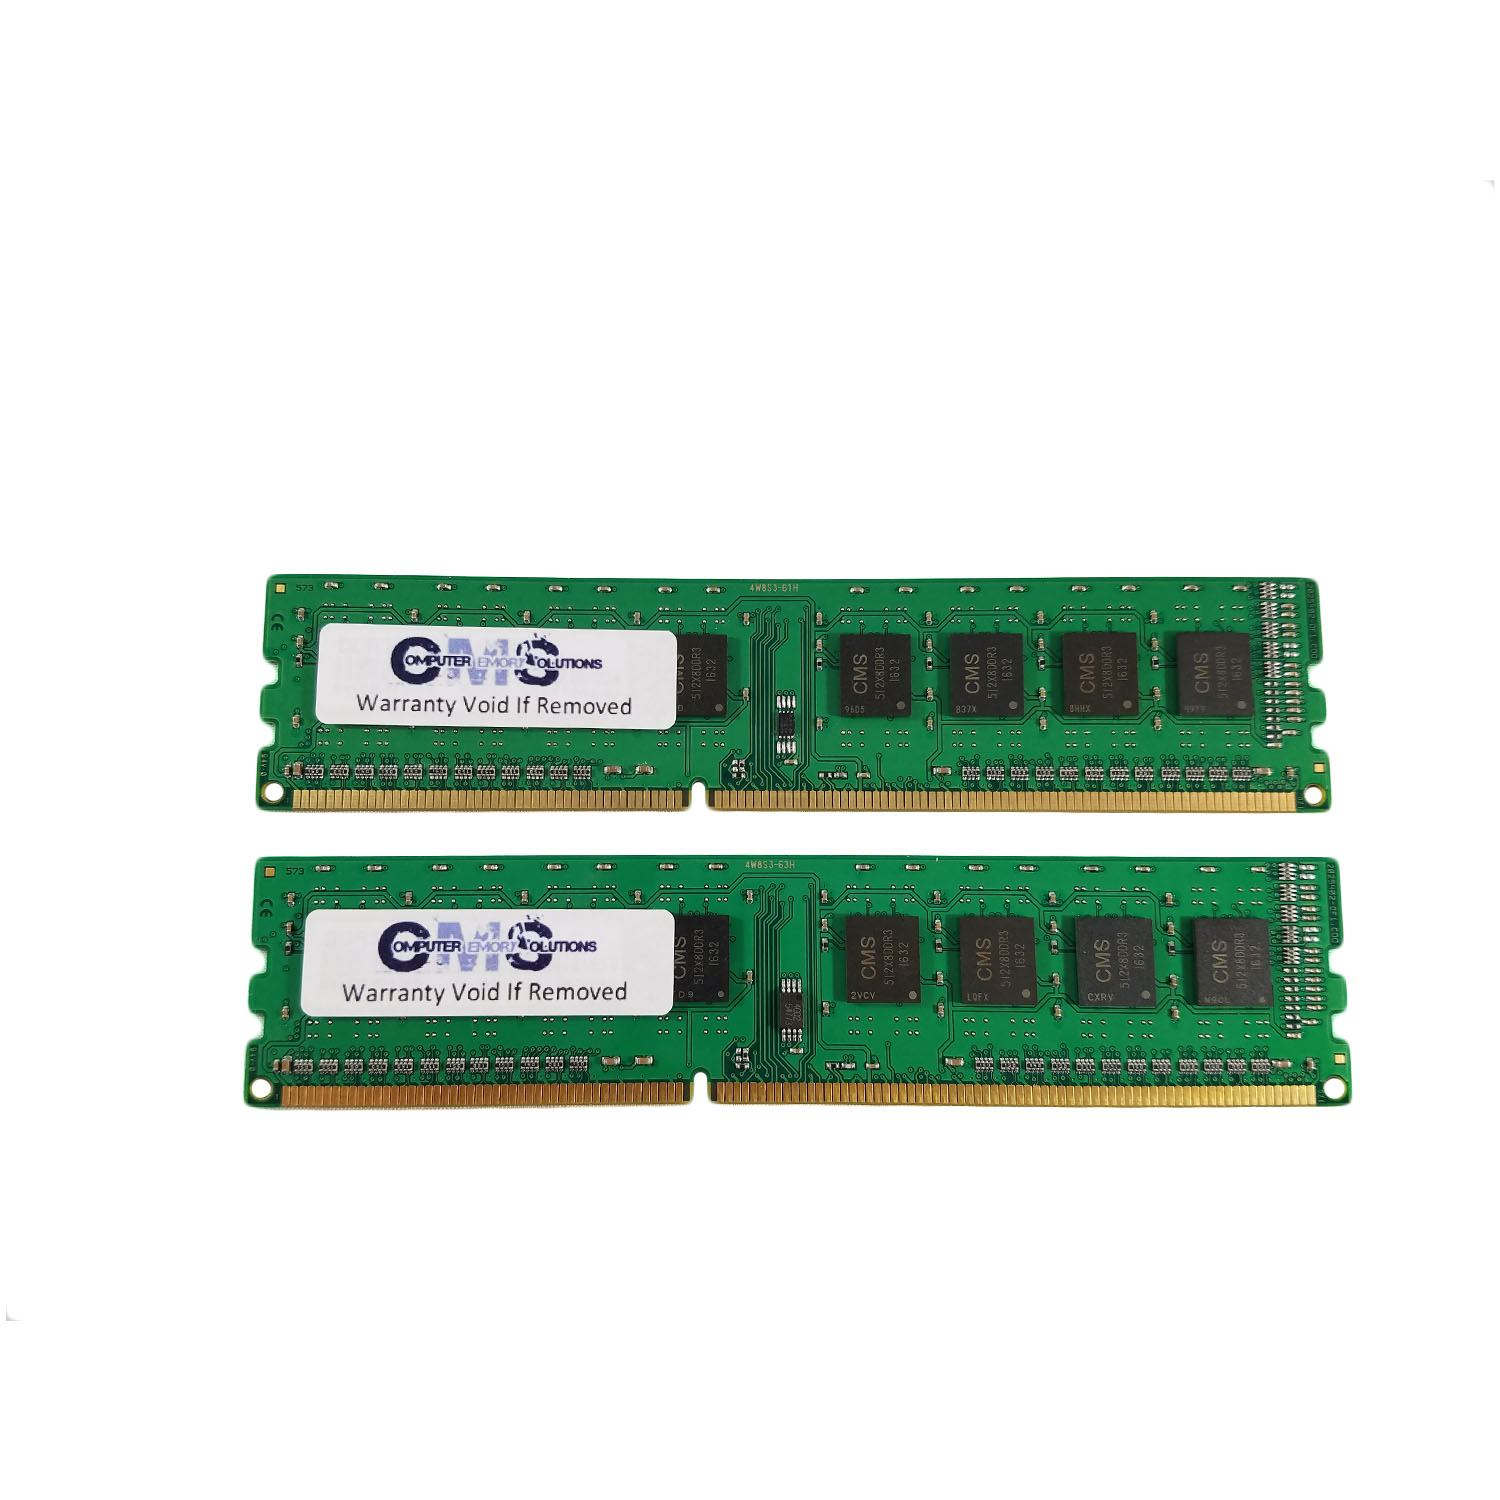 3.0 1GB DDR-266 PC2100 RAM Memory Upgrade for The ECS Elitegroup Computer 700 Series 761GX-M754